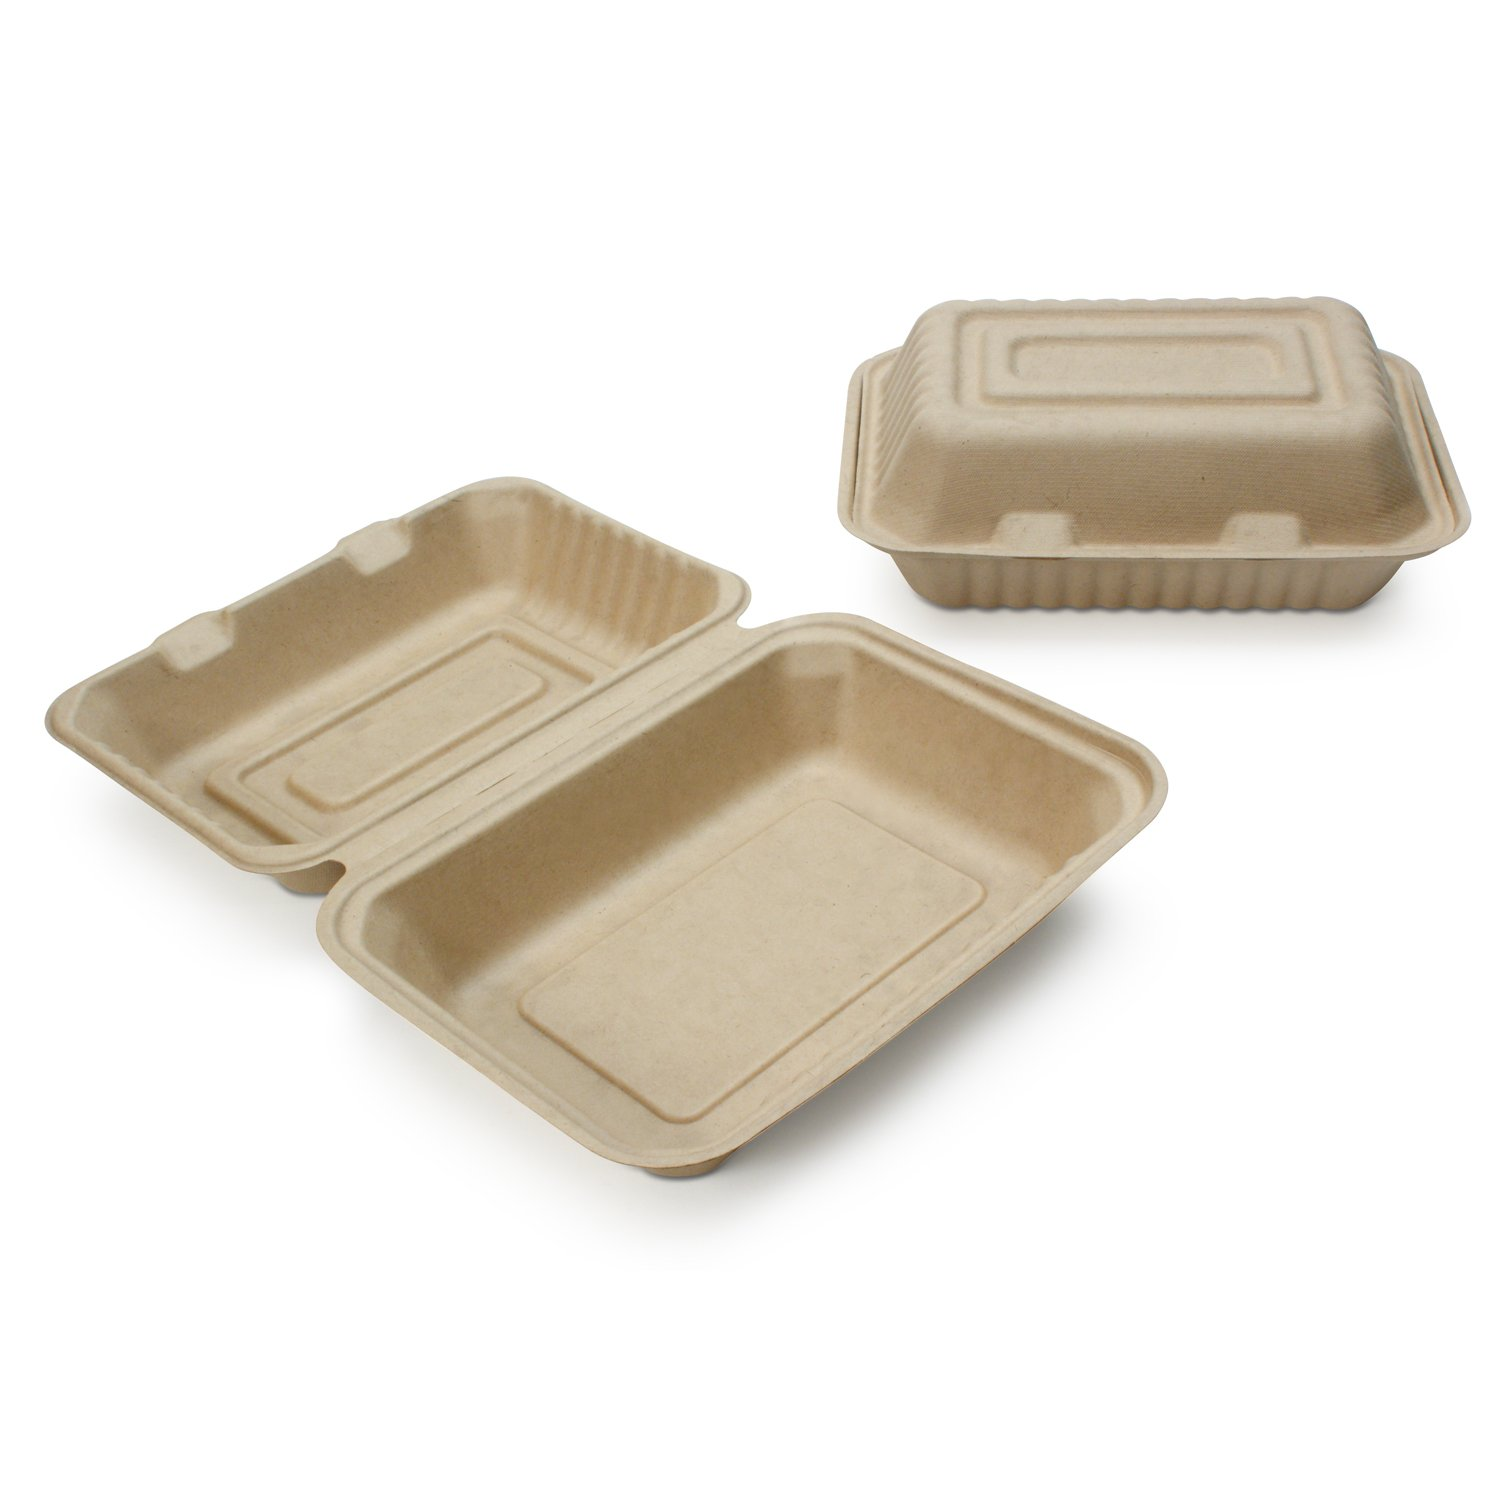 Earth's Natural Alternative Wheat Straw Fiber, Bagasse (Sugarcane) Tree Free 9'' x 6'' x 3'' Clam Shell Container, 500/Case